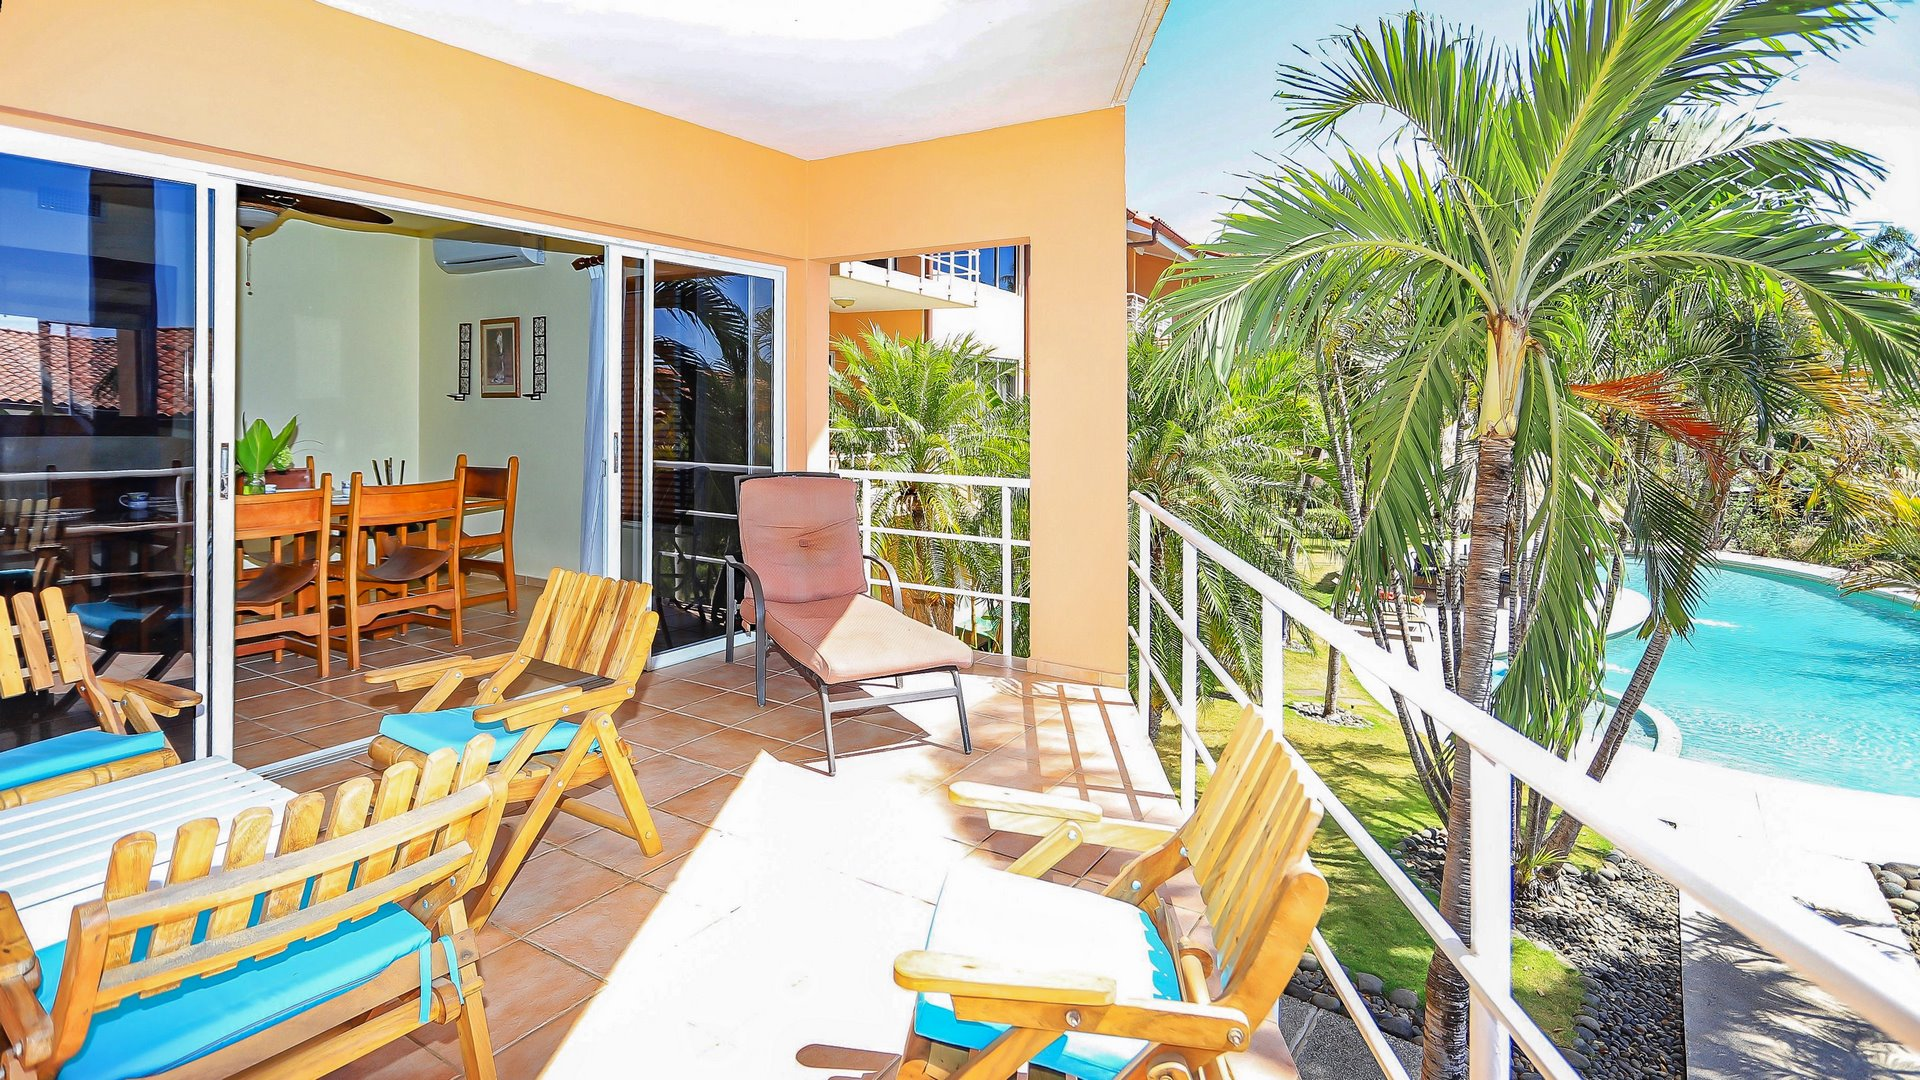 4253-The bright condo for sale in Langosta beach town, northwest Costa Rica